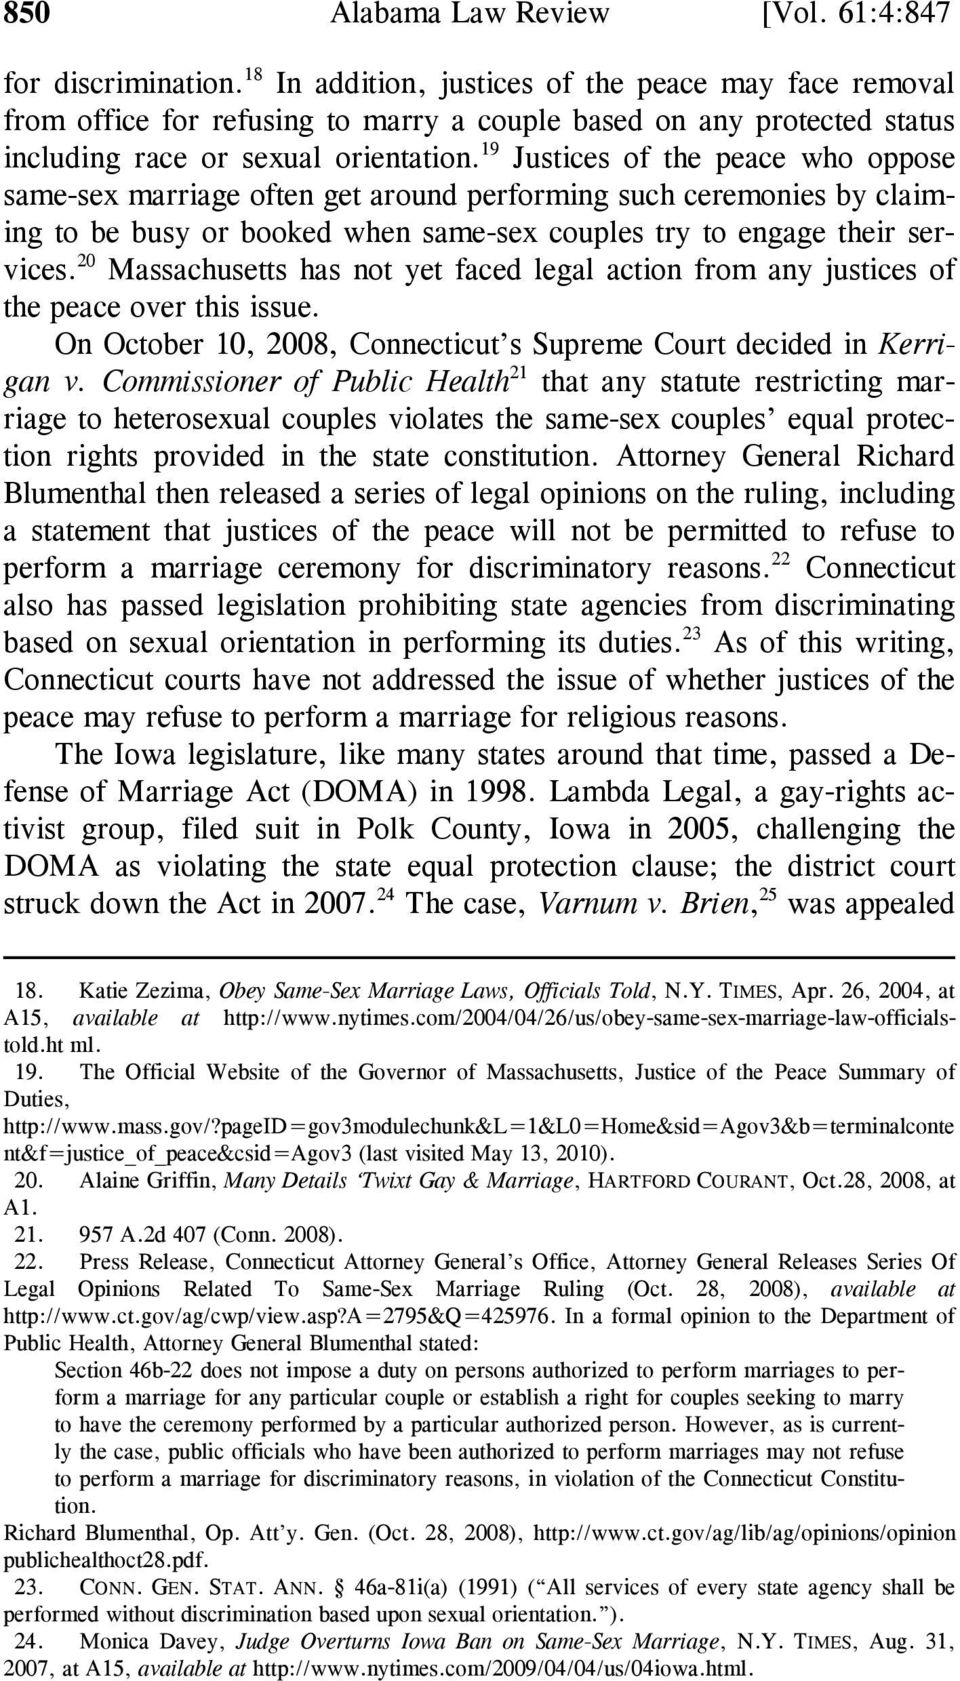 19 Justices of the peace who oppose same-sex marriage often get around performing such ceremonies by claiming to be busy or booked when same-sex couples try to engage their services.